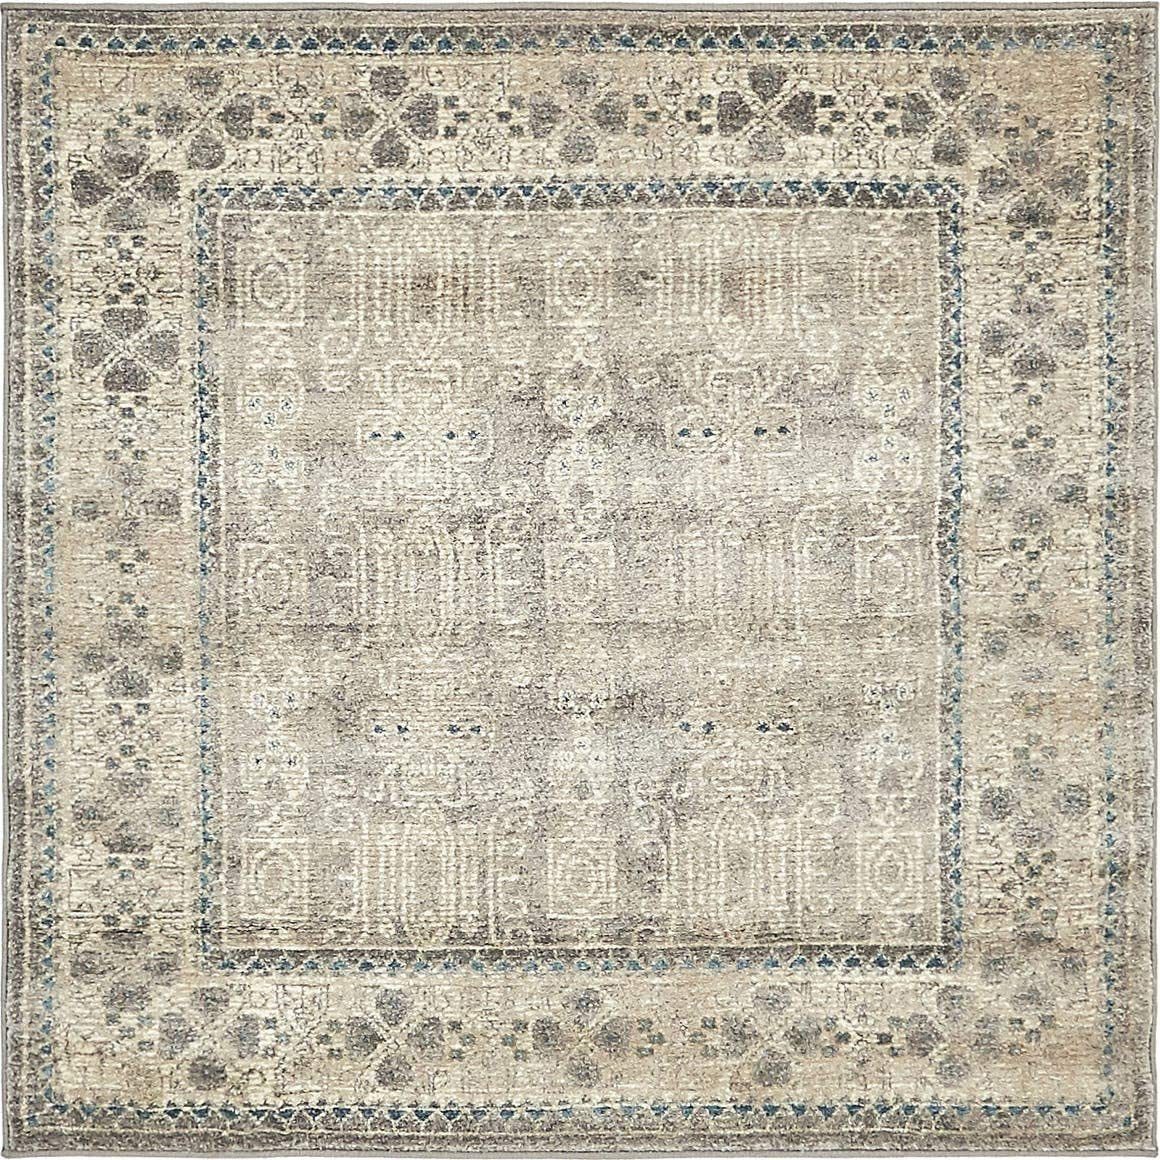 Unique Loom Salzburg Collection Traditional Oriental Gray Square Rug 4 0 x 4 0